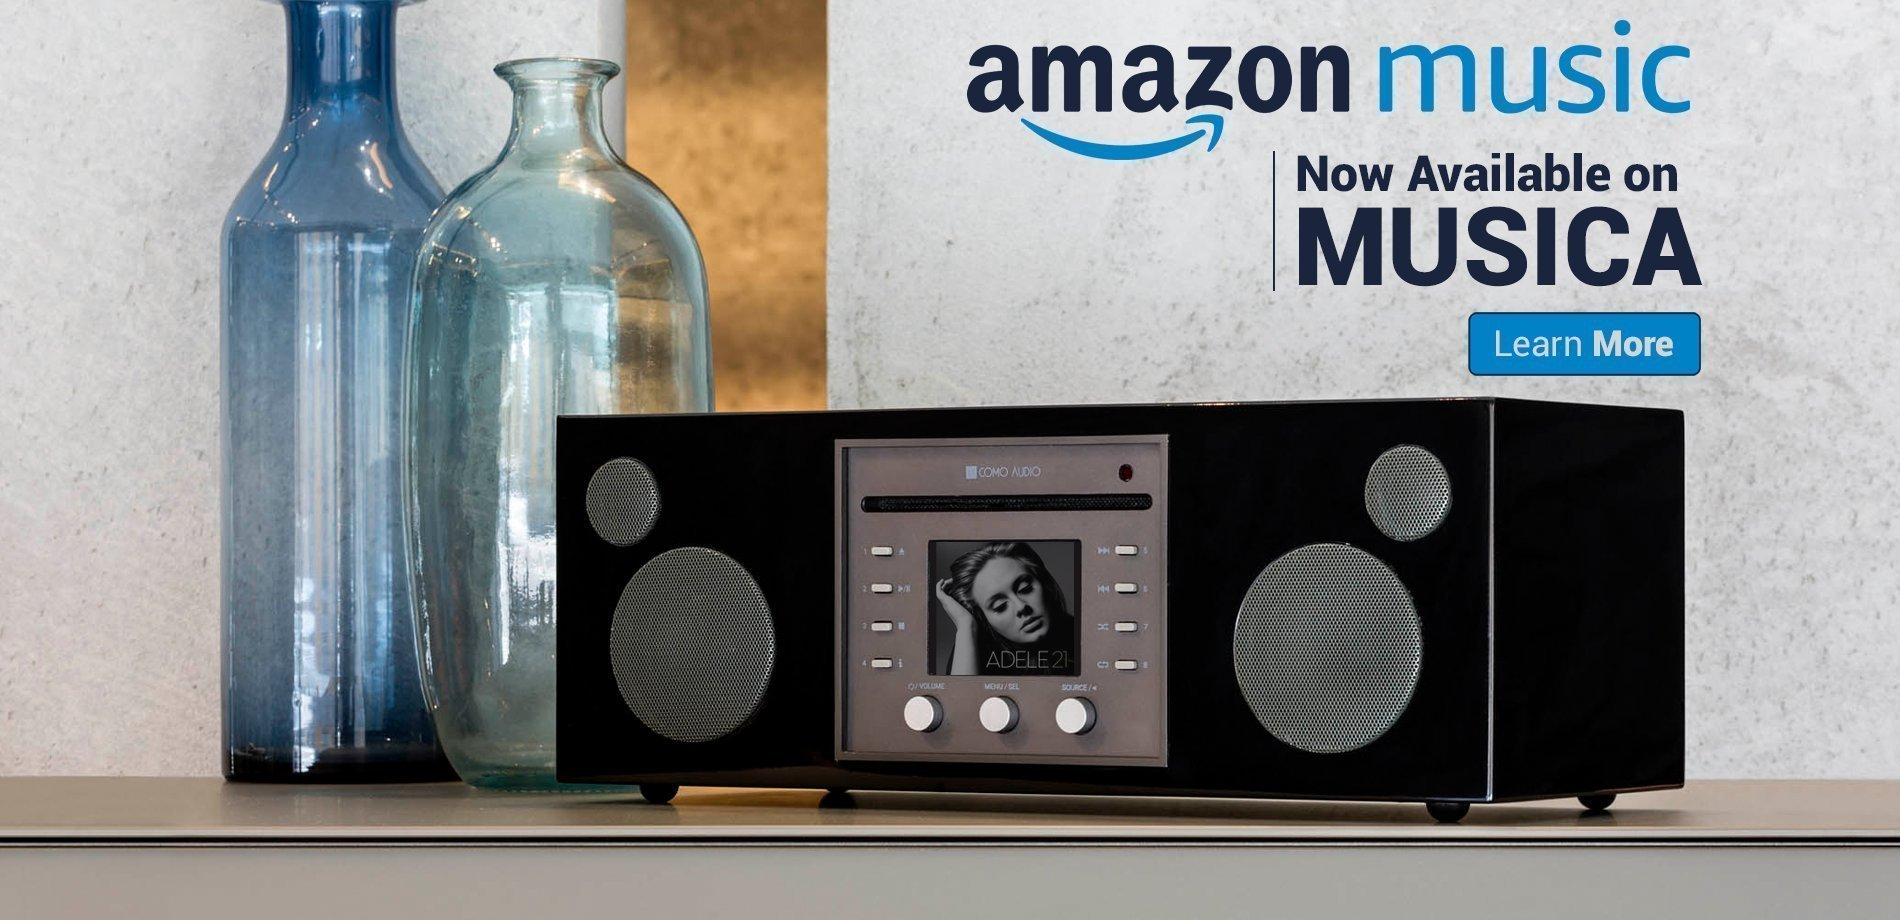 Amazon Music now on Musica!